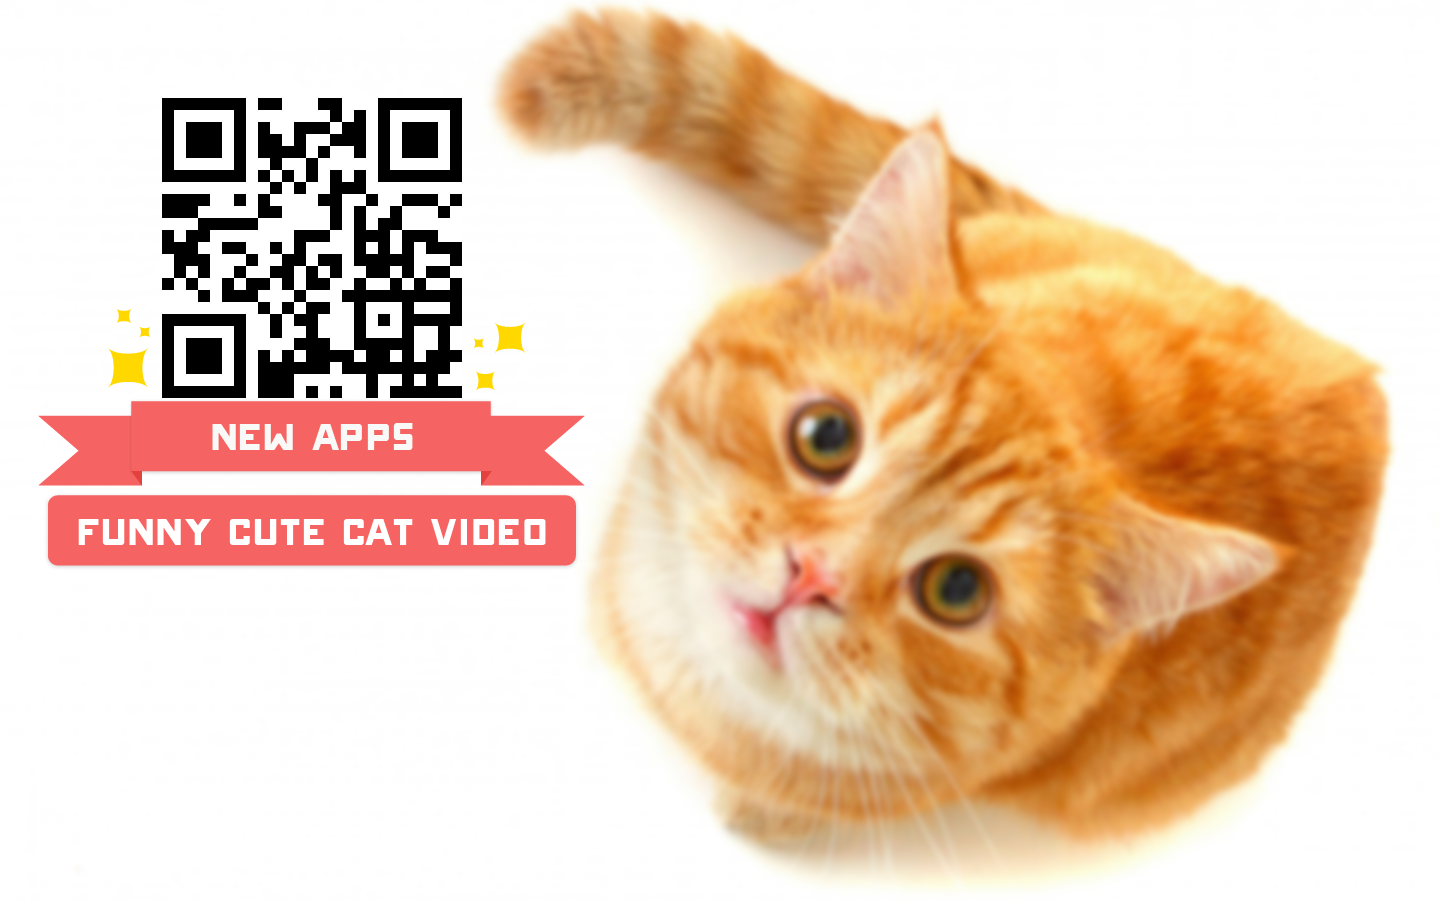 Funny Cute Cat Video Android Apps on Google Play